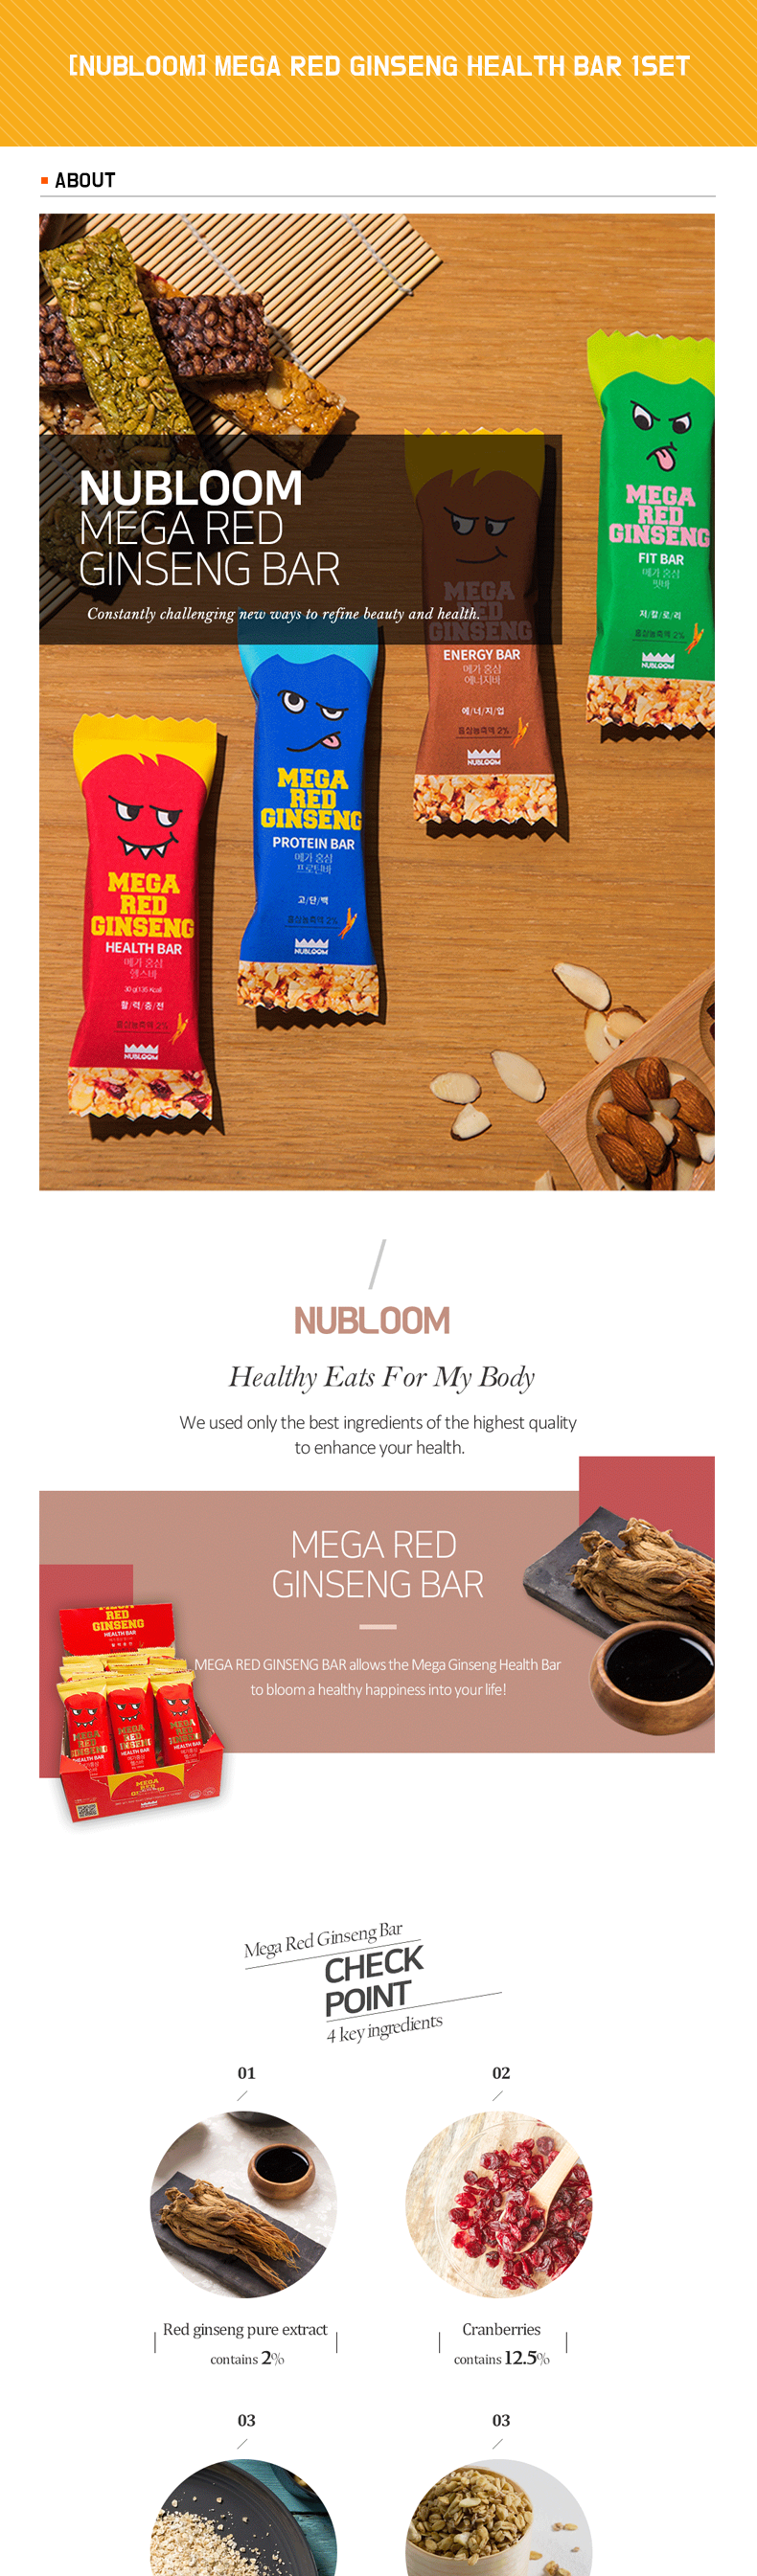 [NUBLOOM] MEGA RED GINSENG HEALTH BAR 1SET